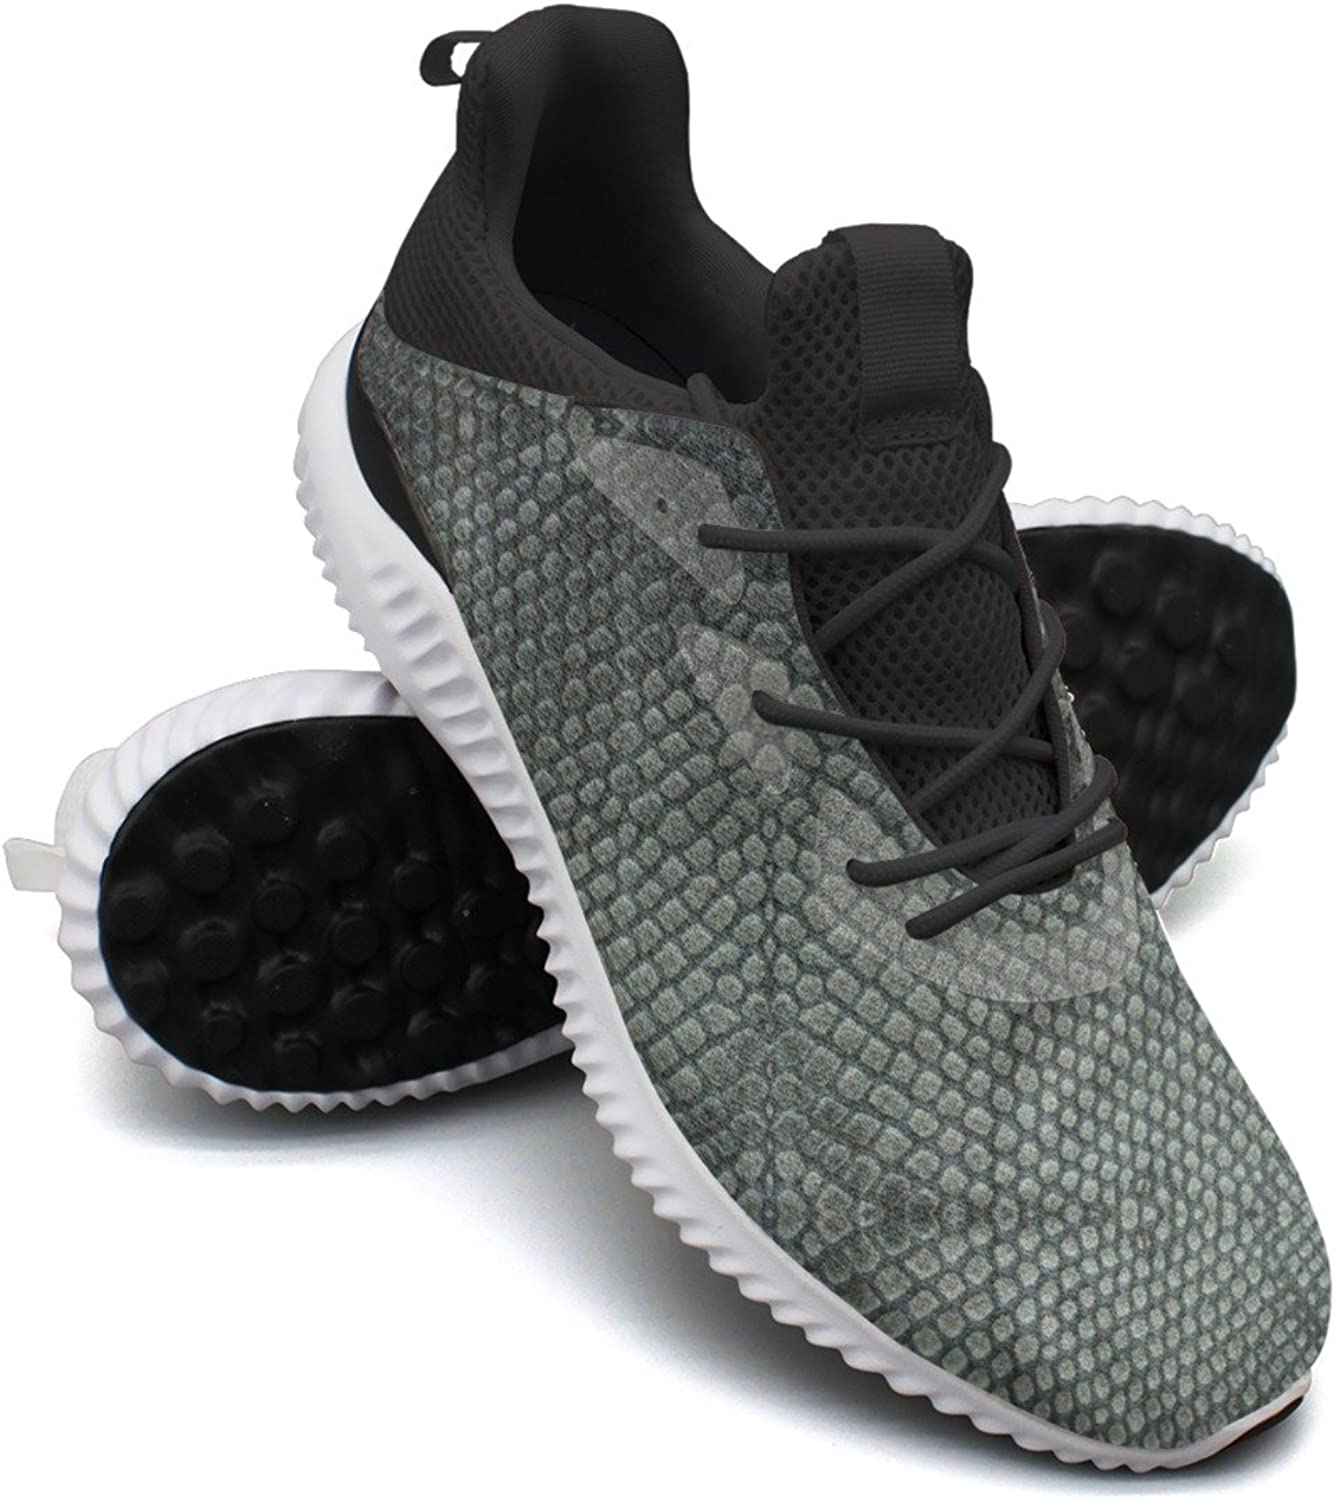 Snake Skin Case Leisure Sports Running shoes Woman's Printing Novelty colorful